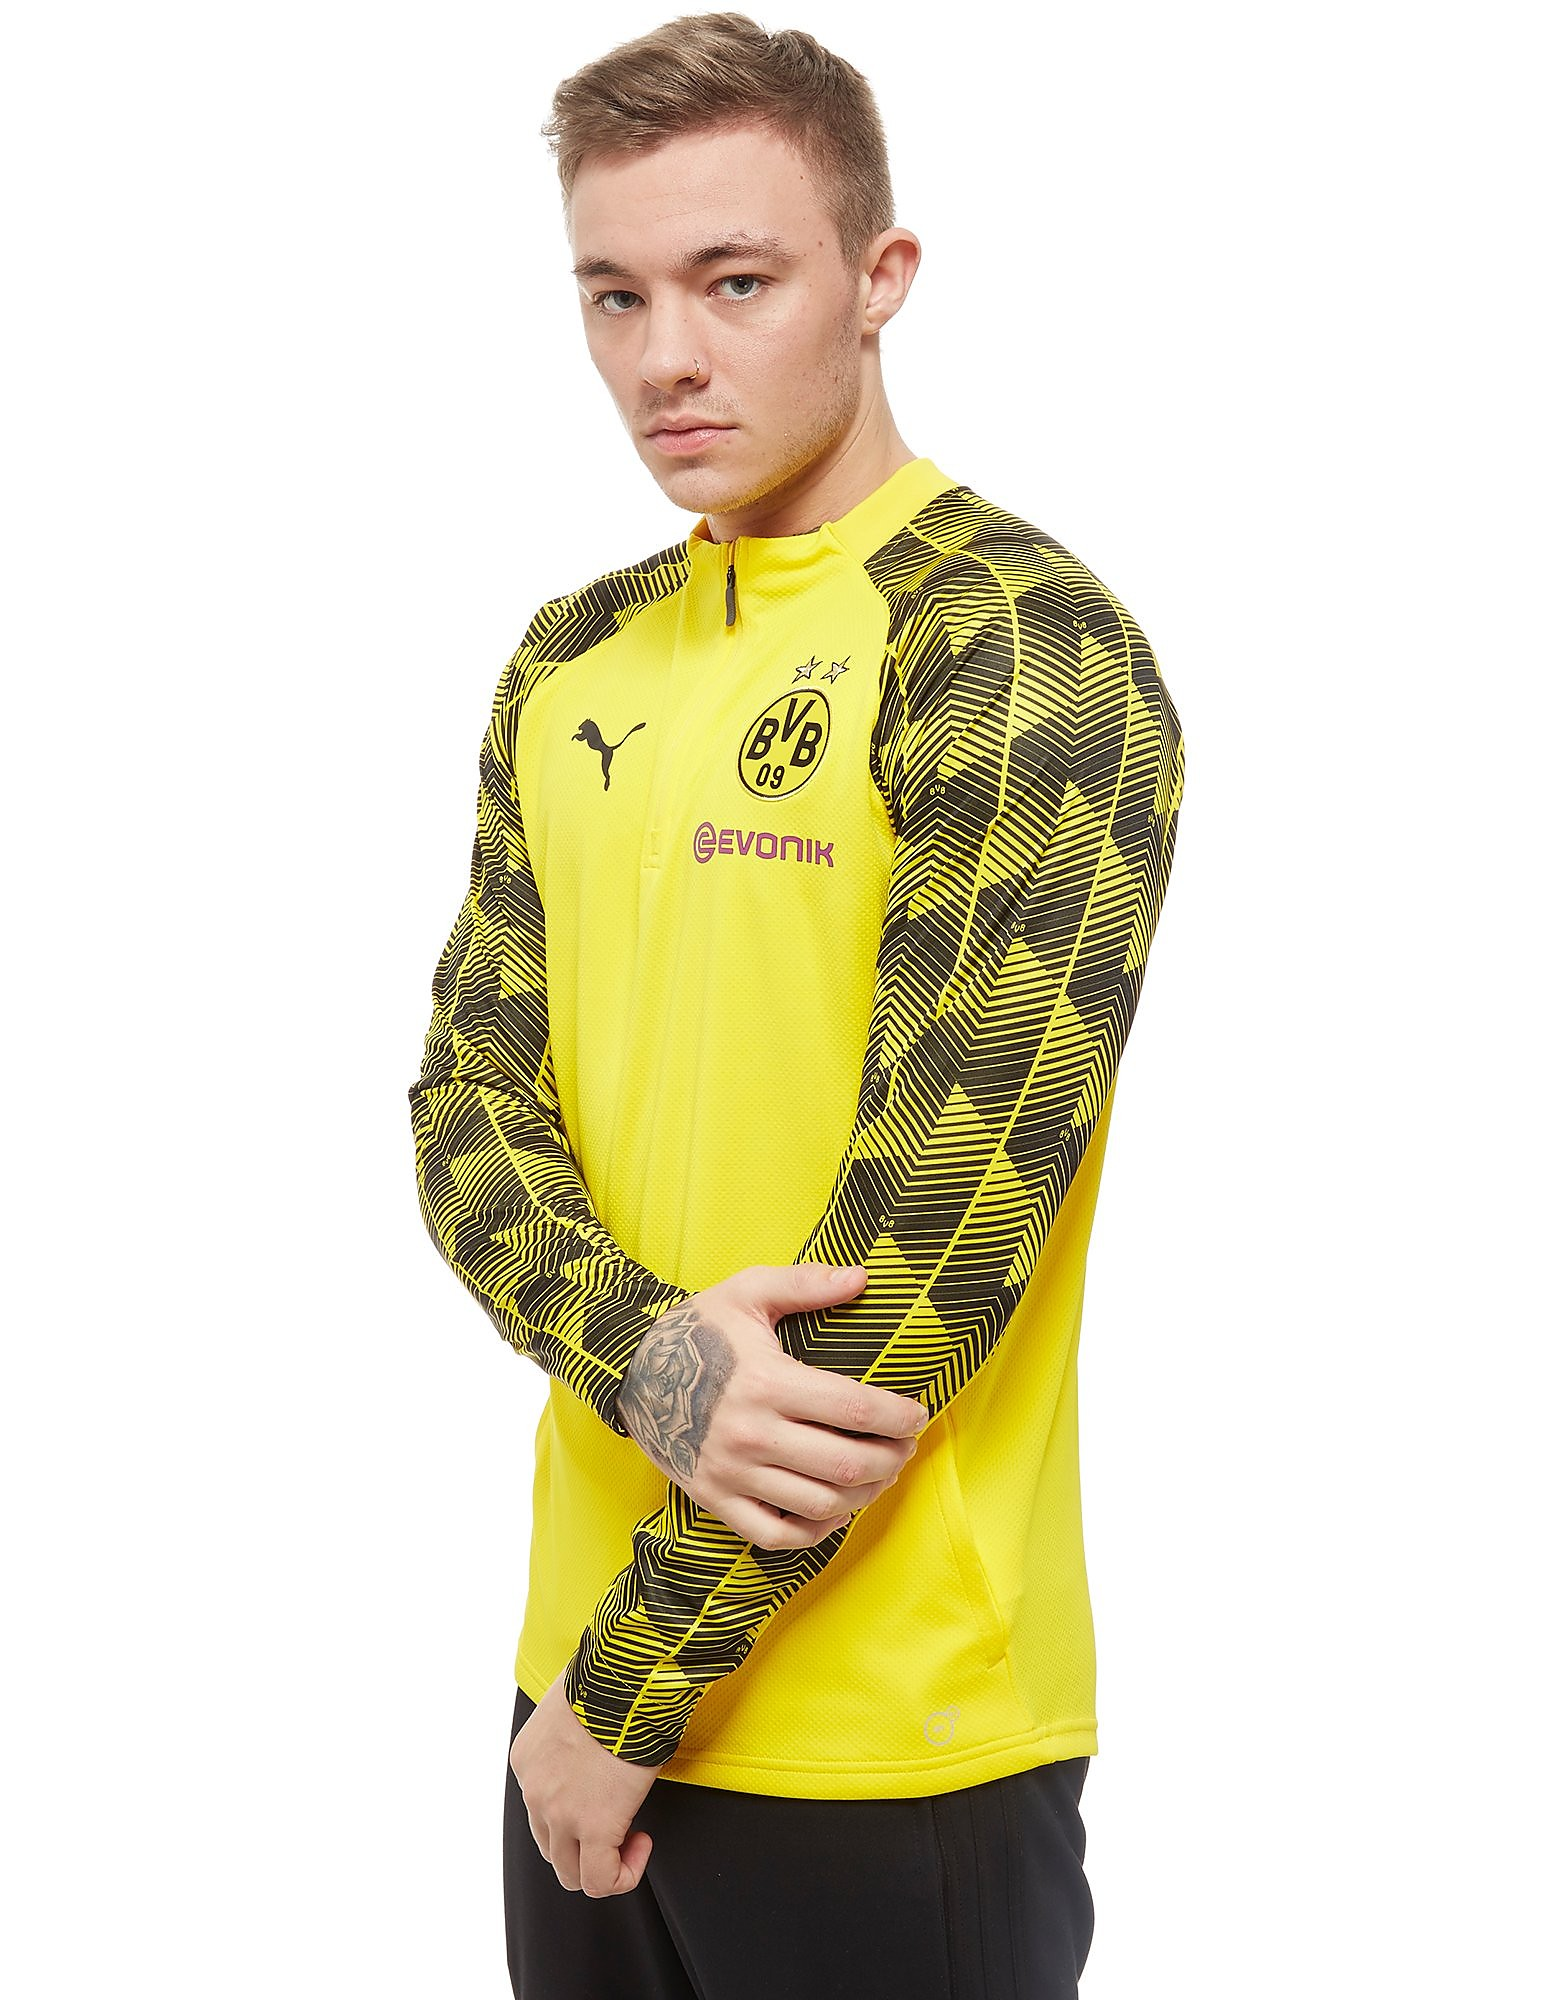 PUMA Borussia Dortmund 2018 1/4 Zip Training Top